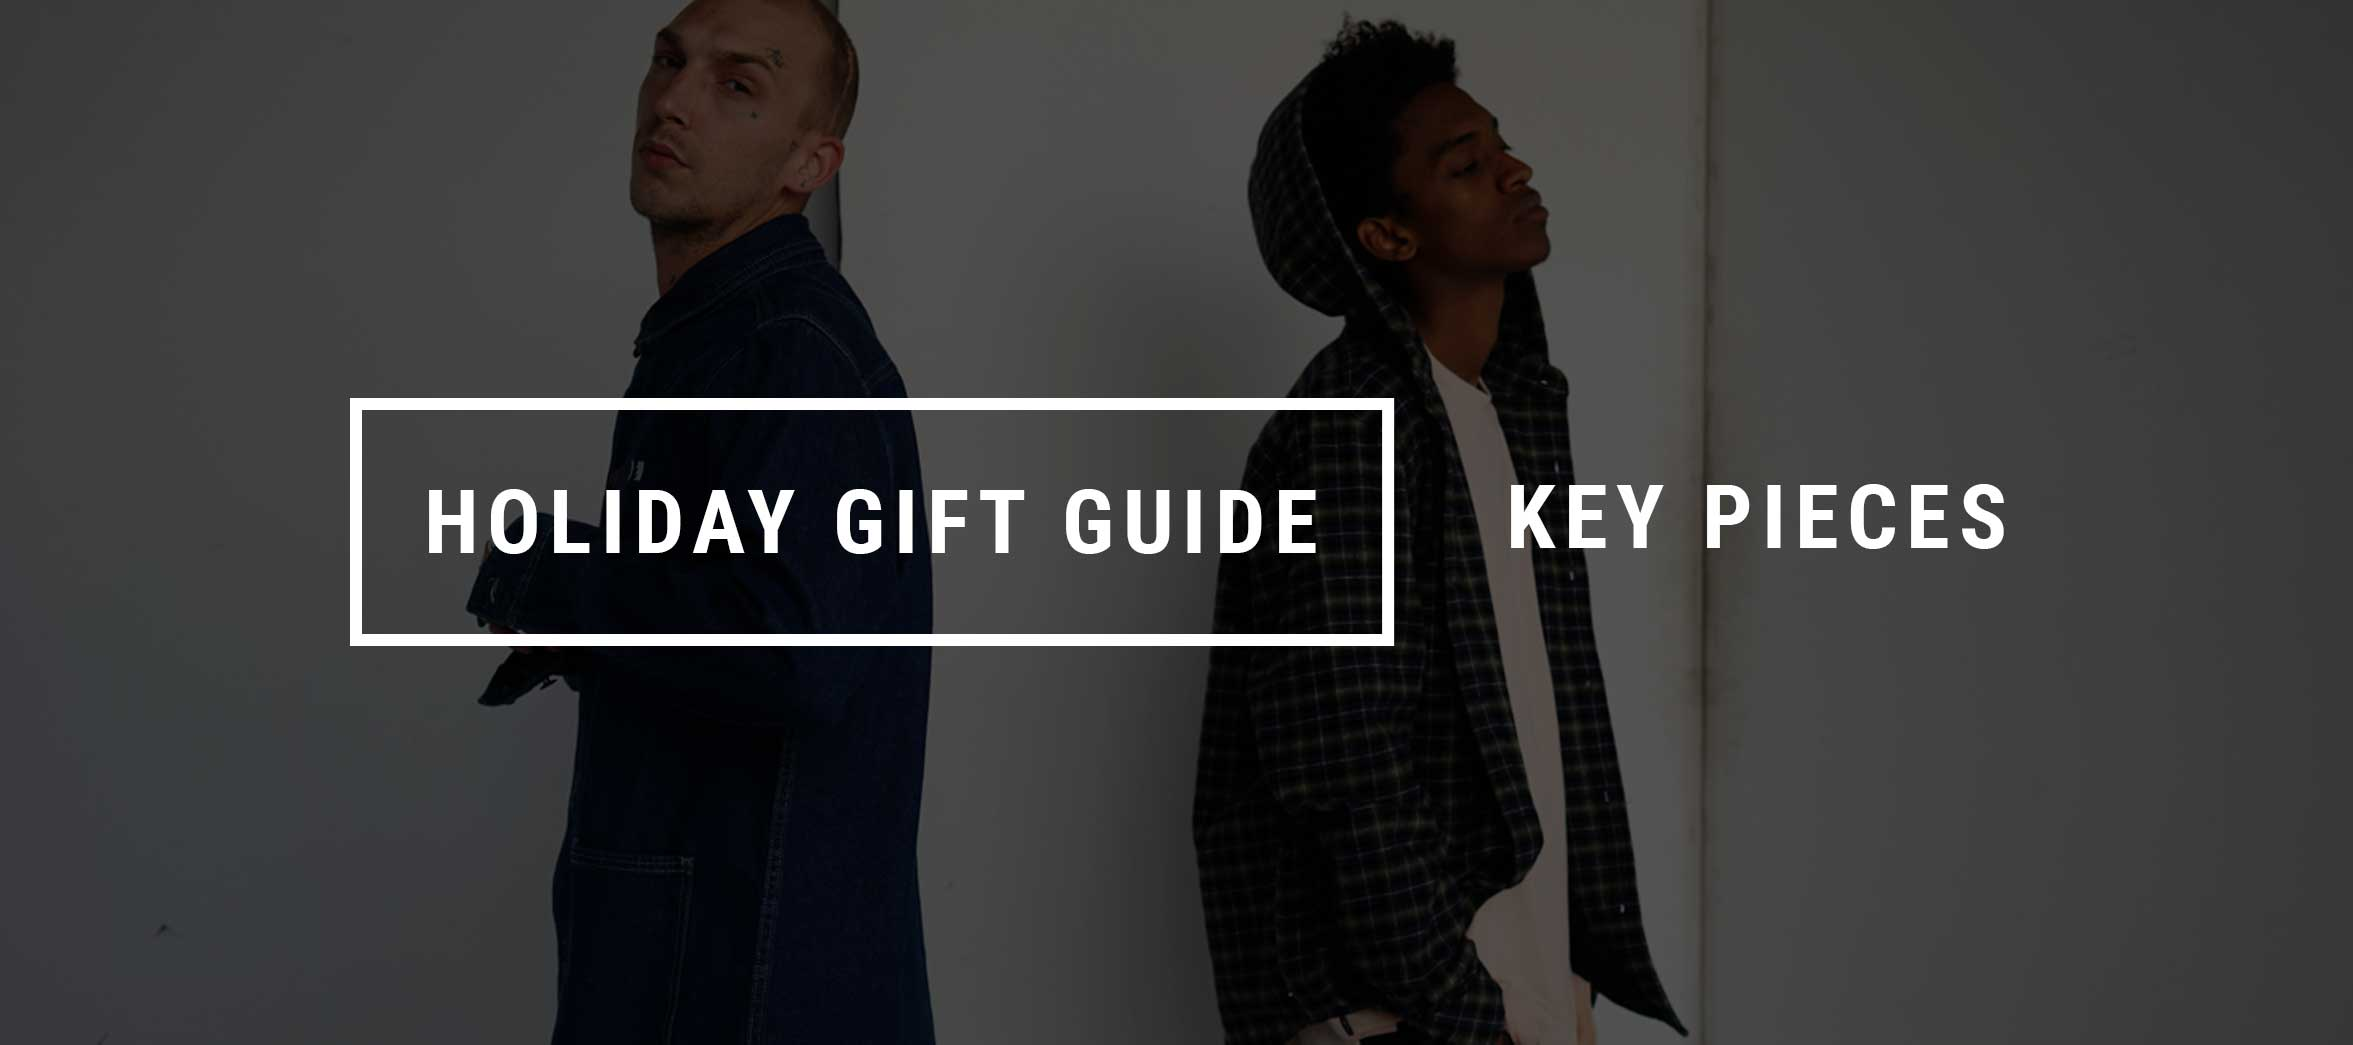 Gift Guide - Key Pieces